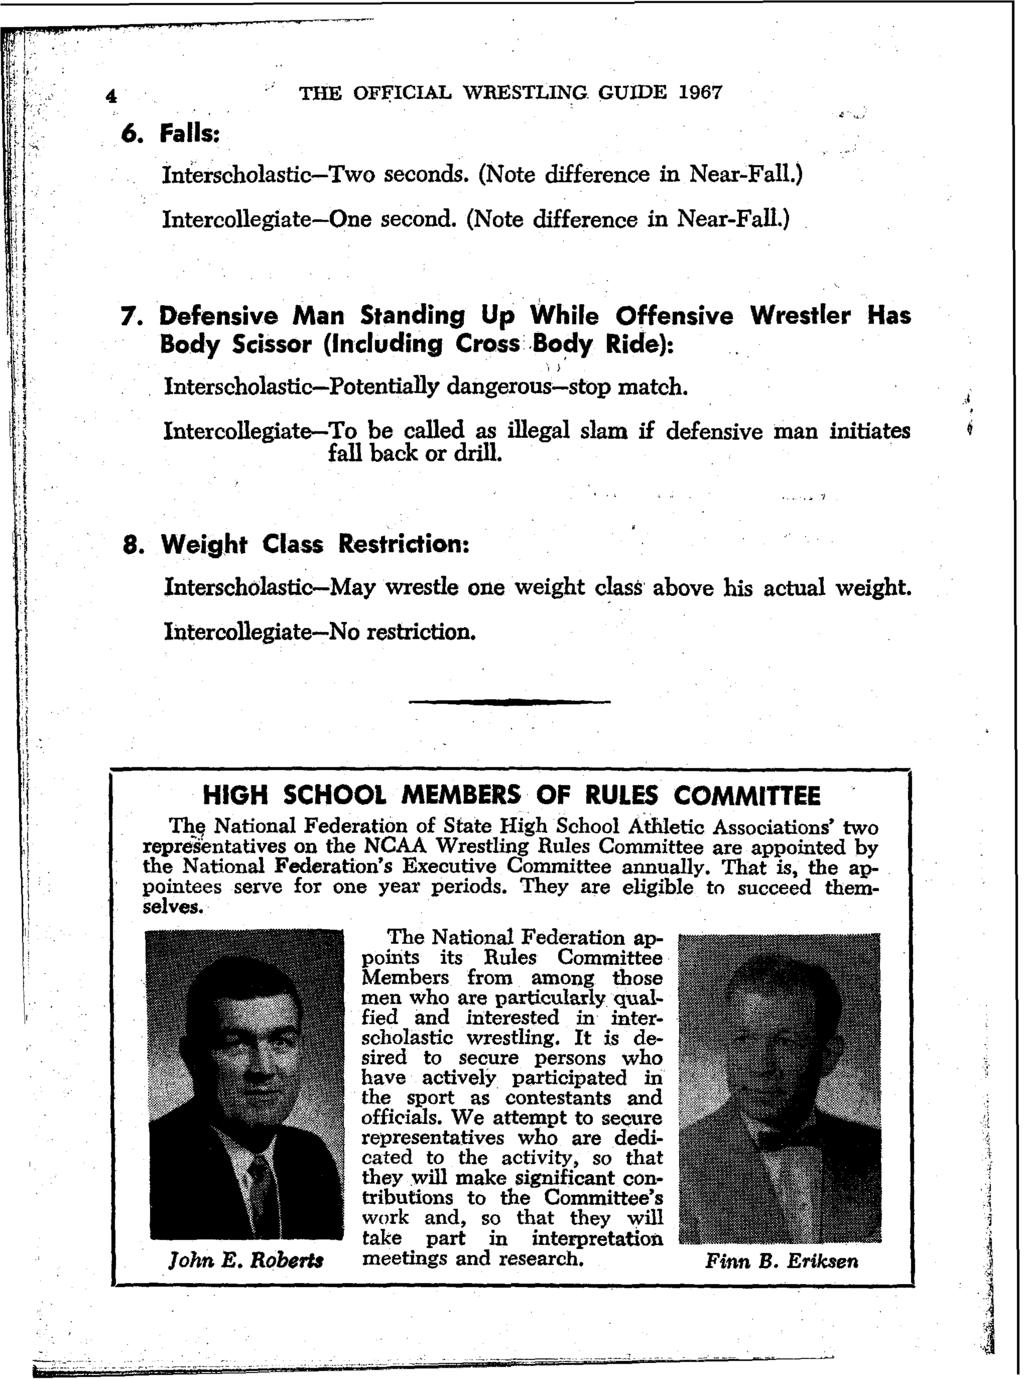 4 ' THE OFFICIAL WRESTLING GUIDE 1967 6. Falls: ~nterscholastic-two seconds. (Note difference in Near-Fall.) Intercollegiate-One second. (Note difference in Near-Fall.) 7.